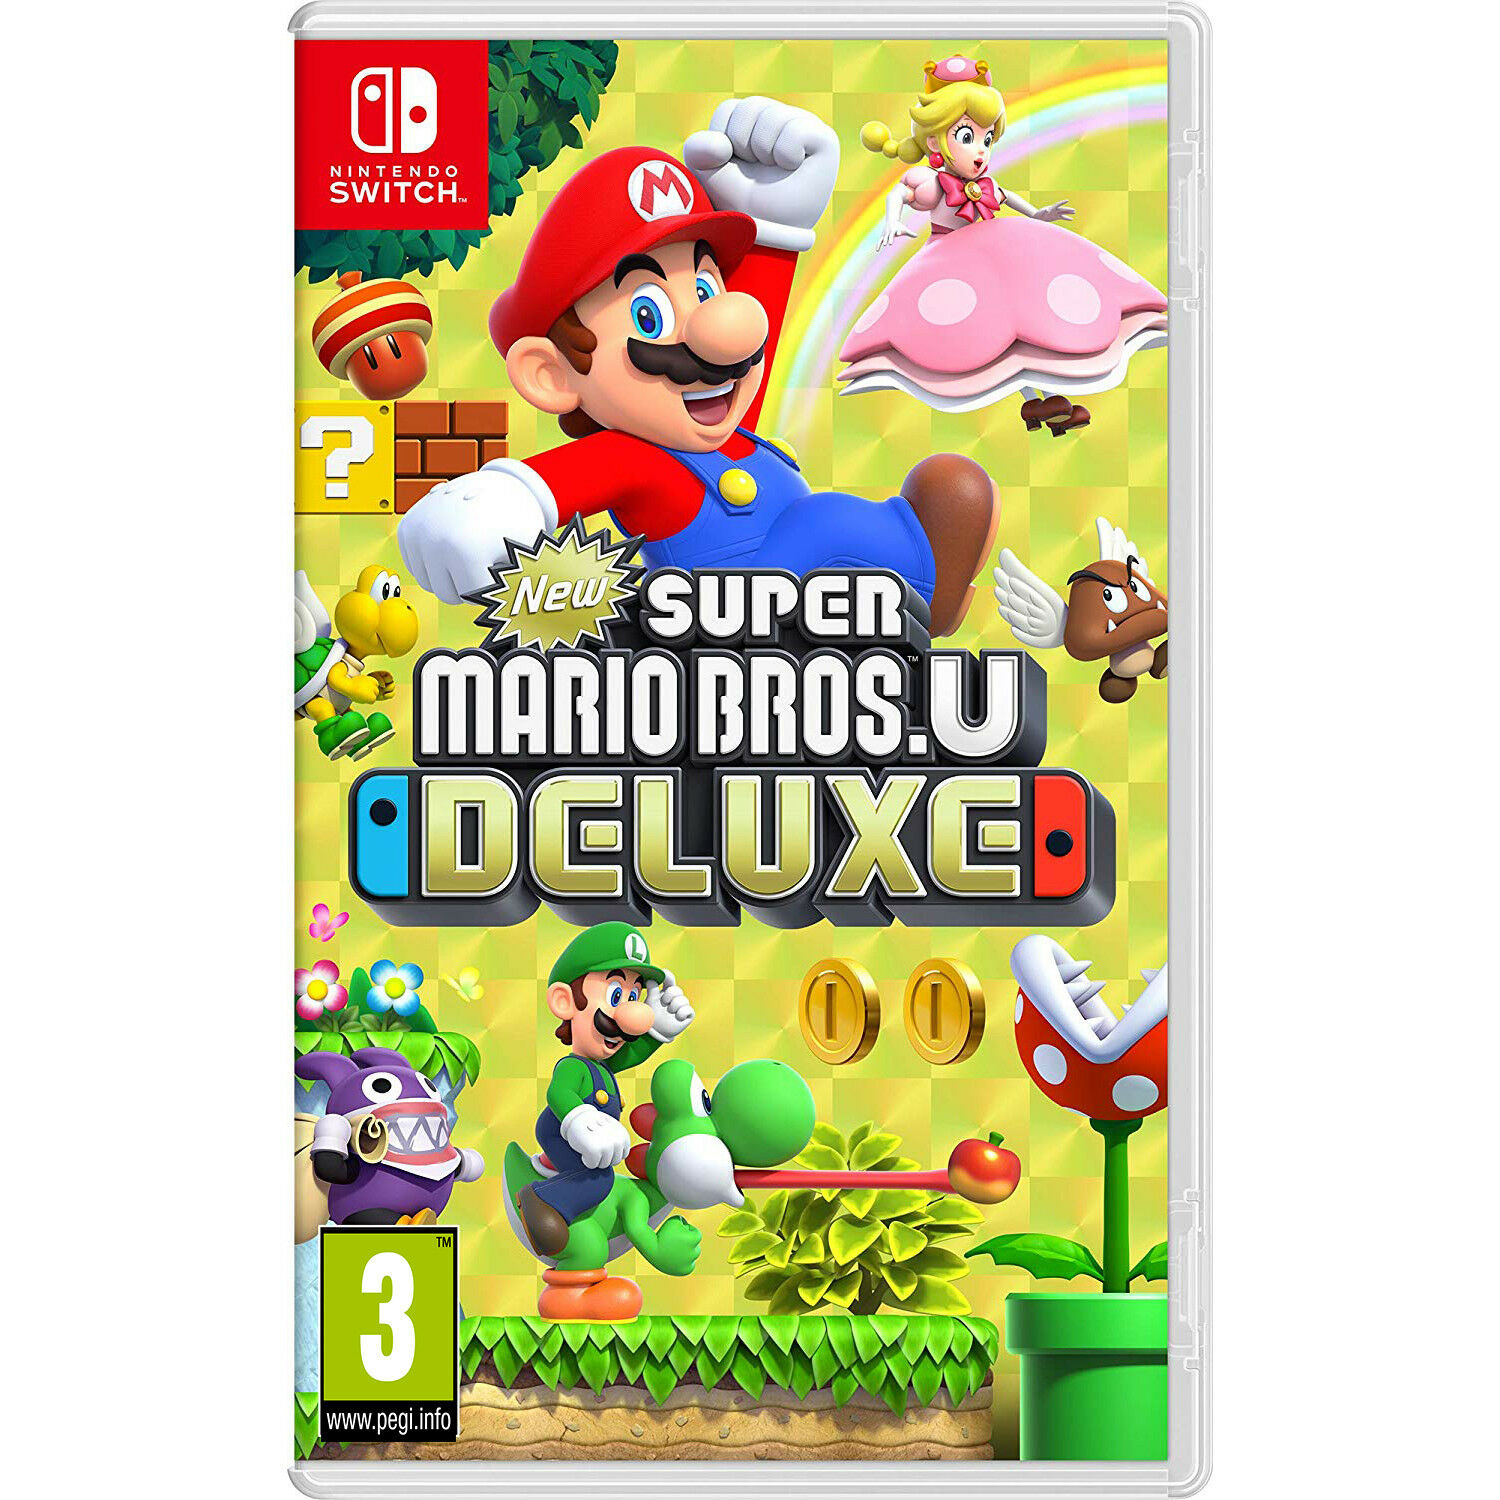 Nintendo Switch Games: Super Mario Bros. U Deluxe